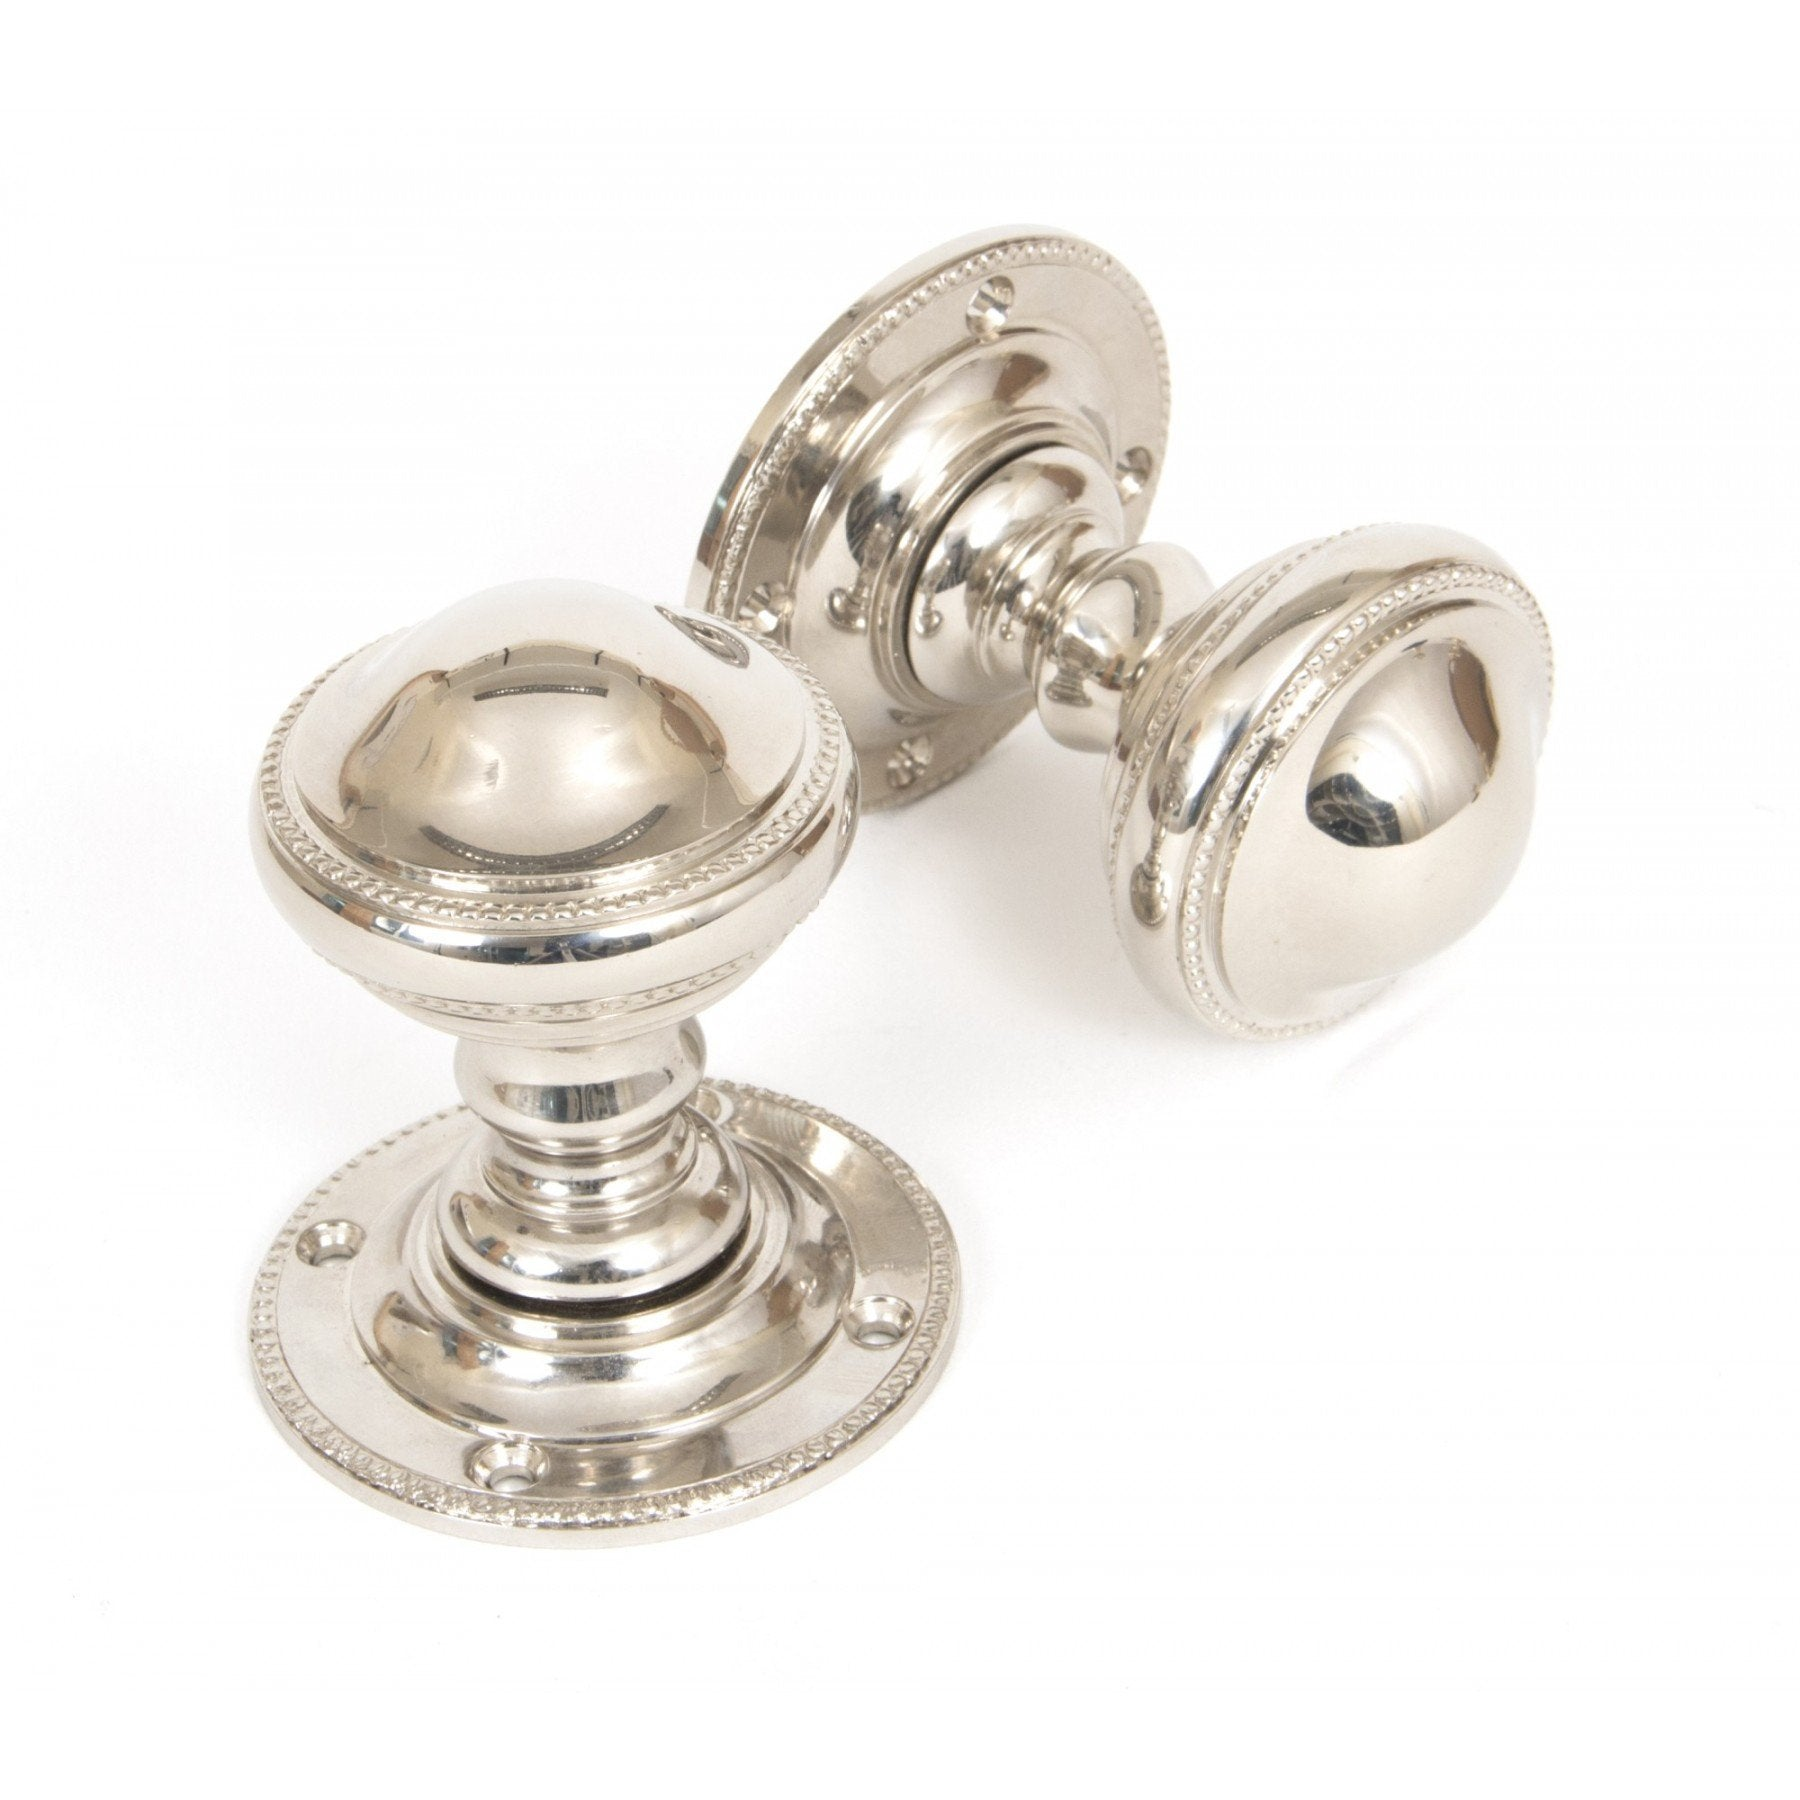 Polished Nickel Brockworth Mortice Knob Set